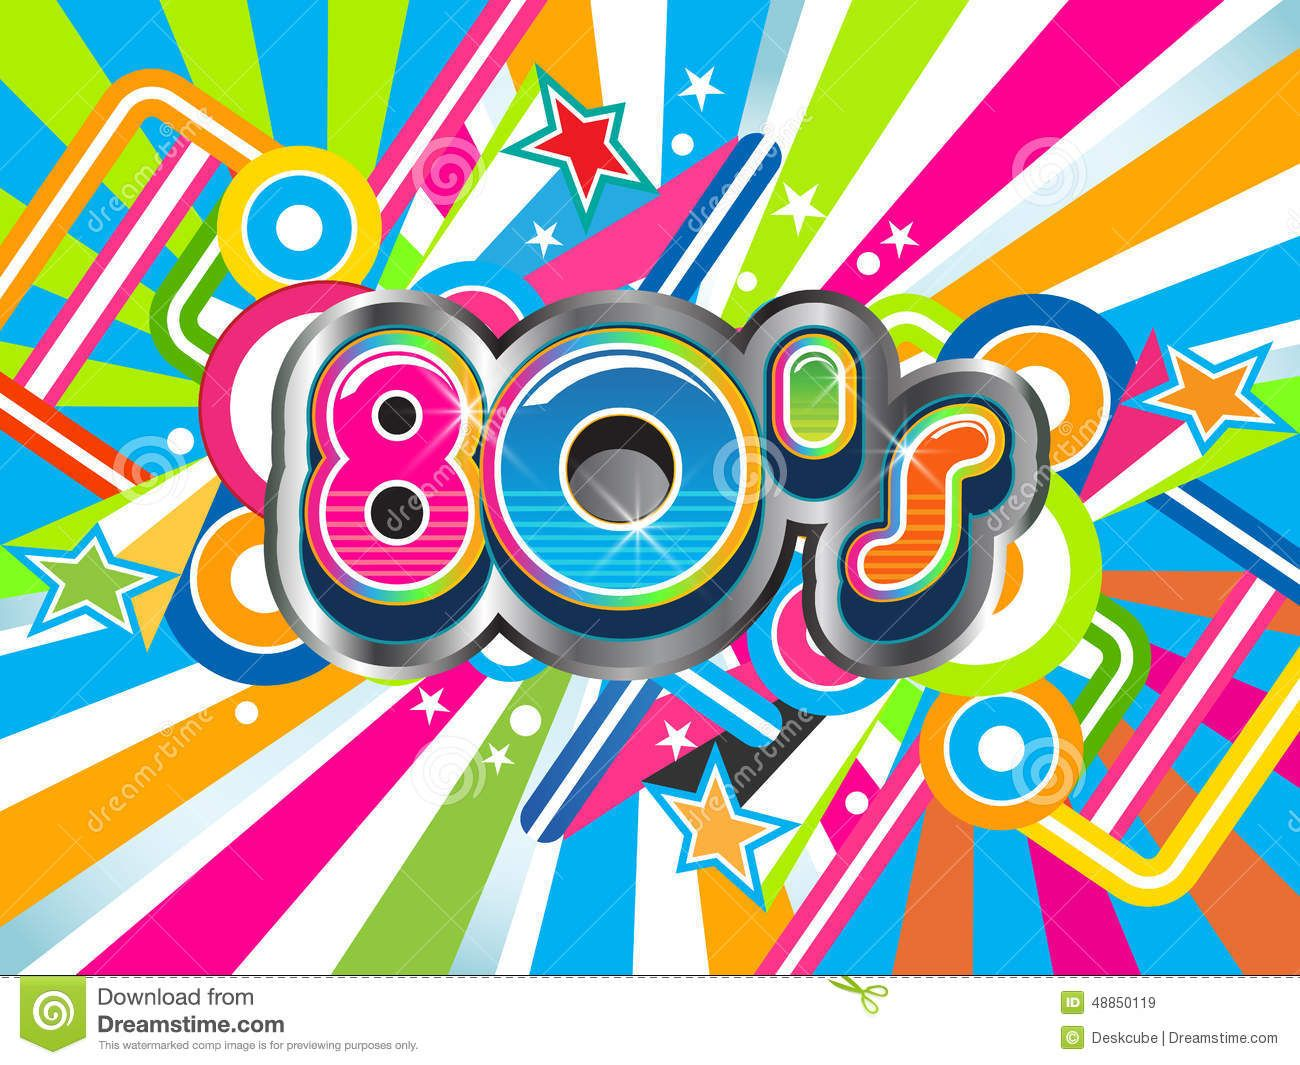 time travel party theme   Festive 80s theme party background